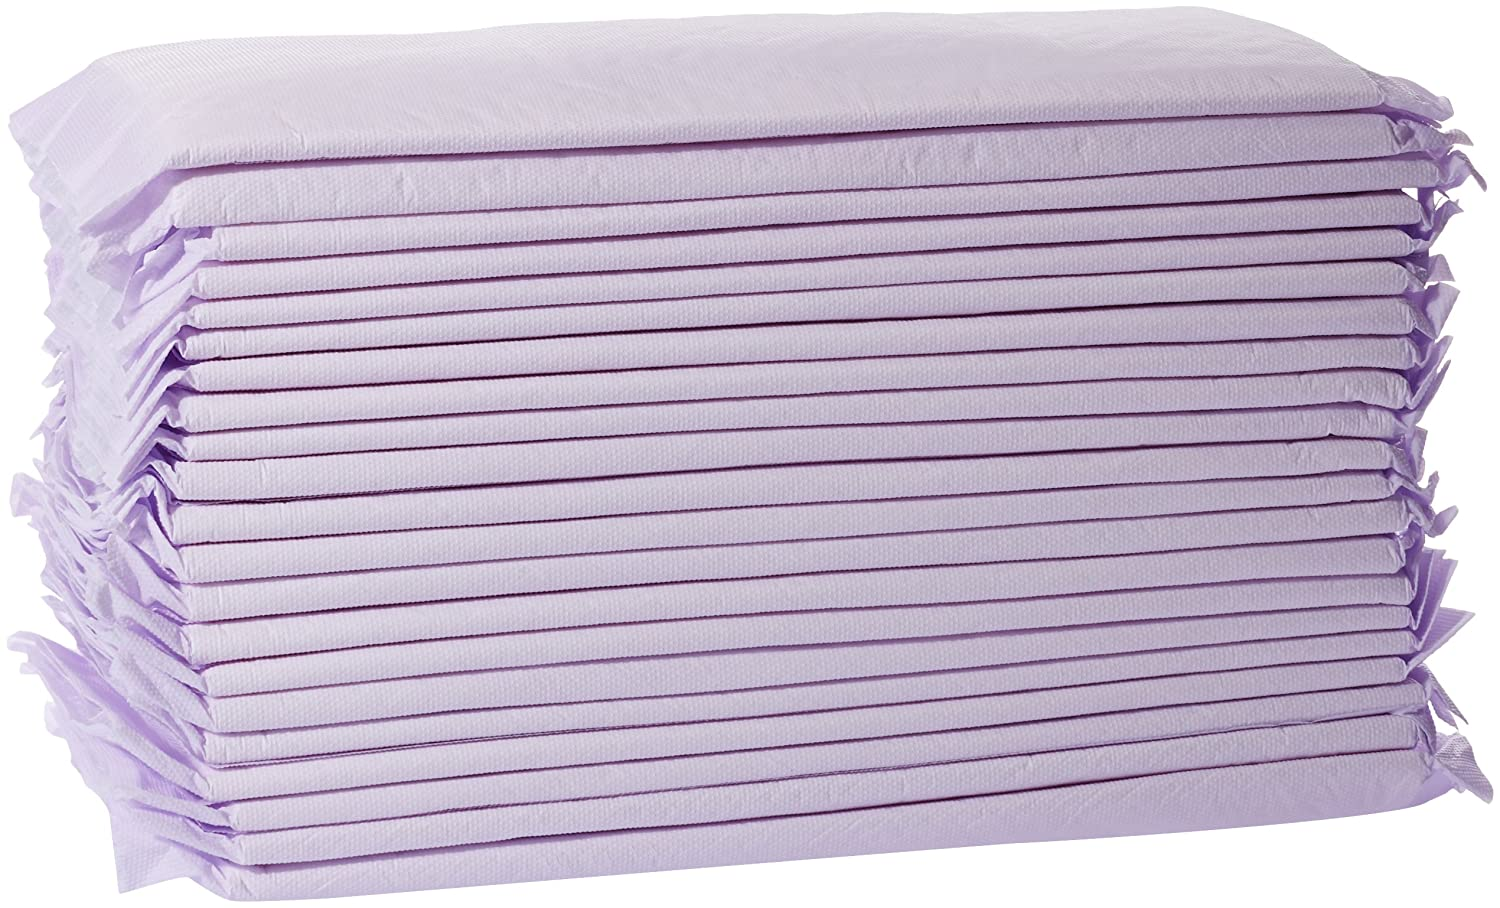 AmazonBasics Cat Litter Pads